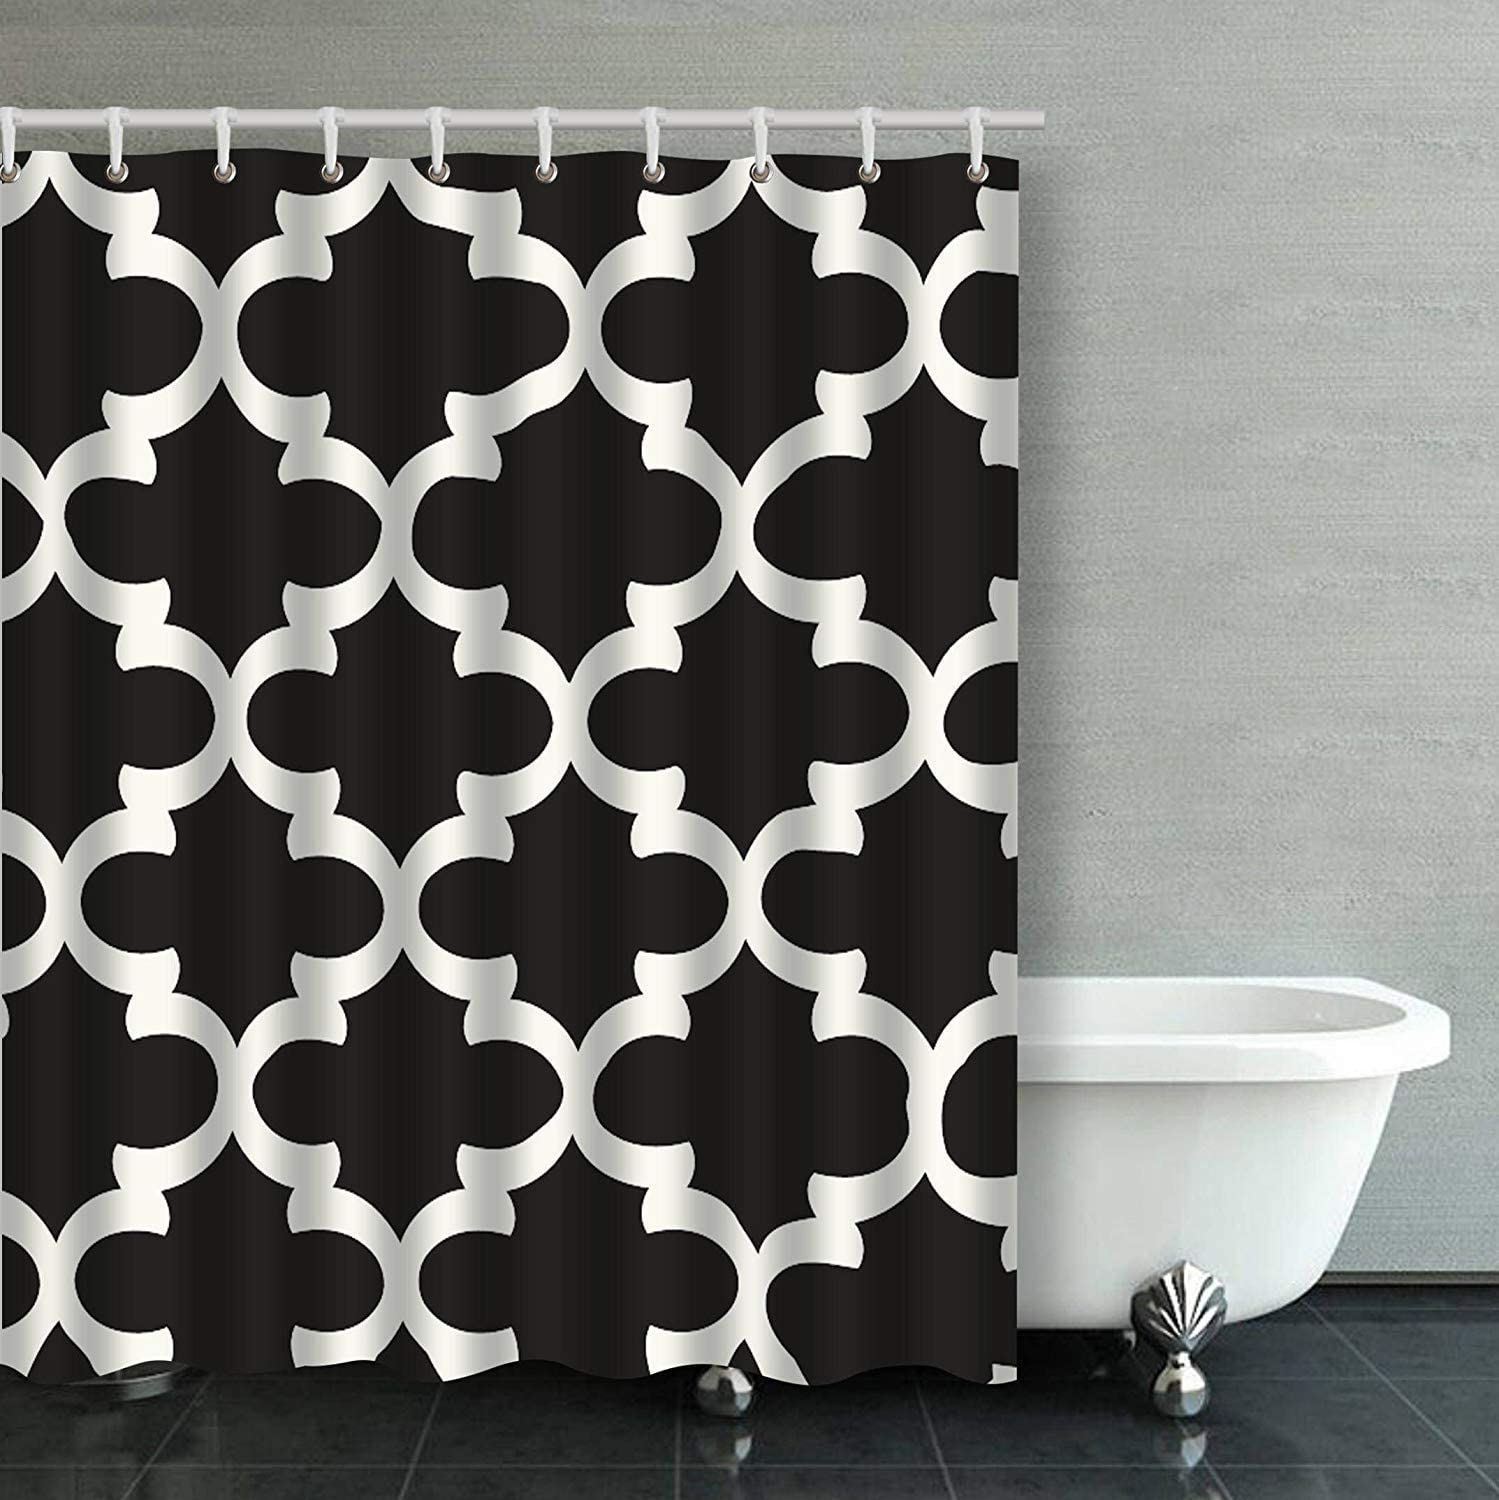 Patwee Cool Black and White Strip Design Shower Curtain Waterproof Fabric for Bathroom Decoration 66x72Inches